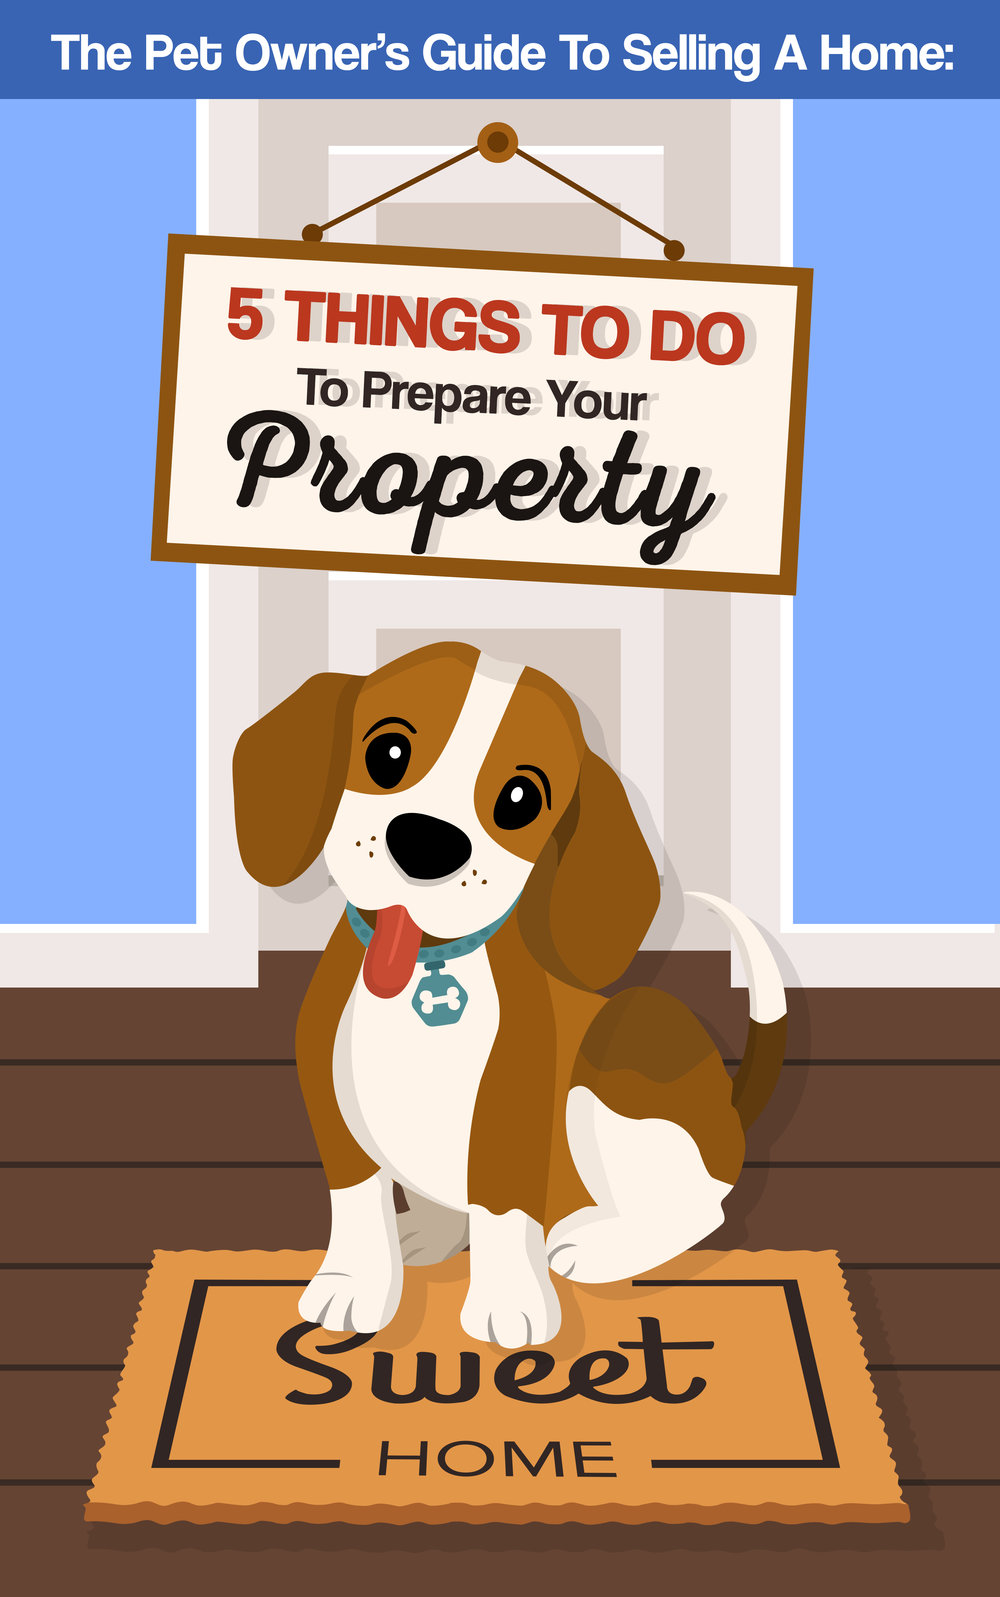 The Pet Owner's Guide To Selling A Home: 5 Things To Do To Prepare Your Property